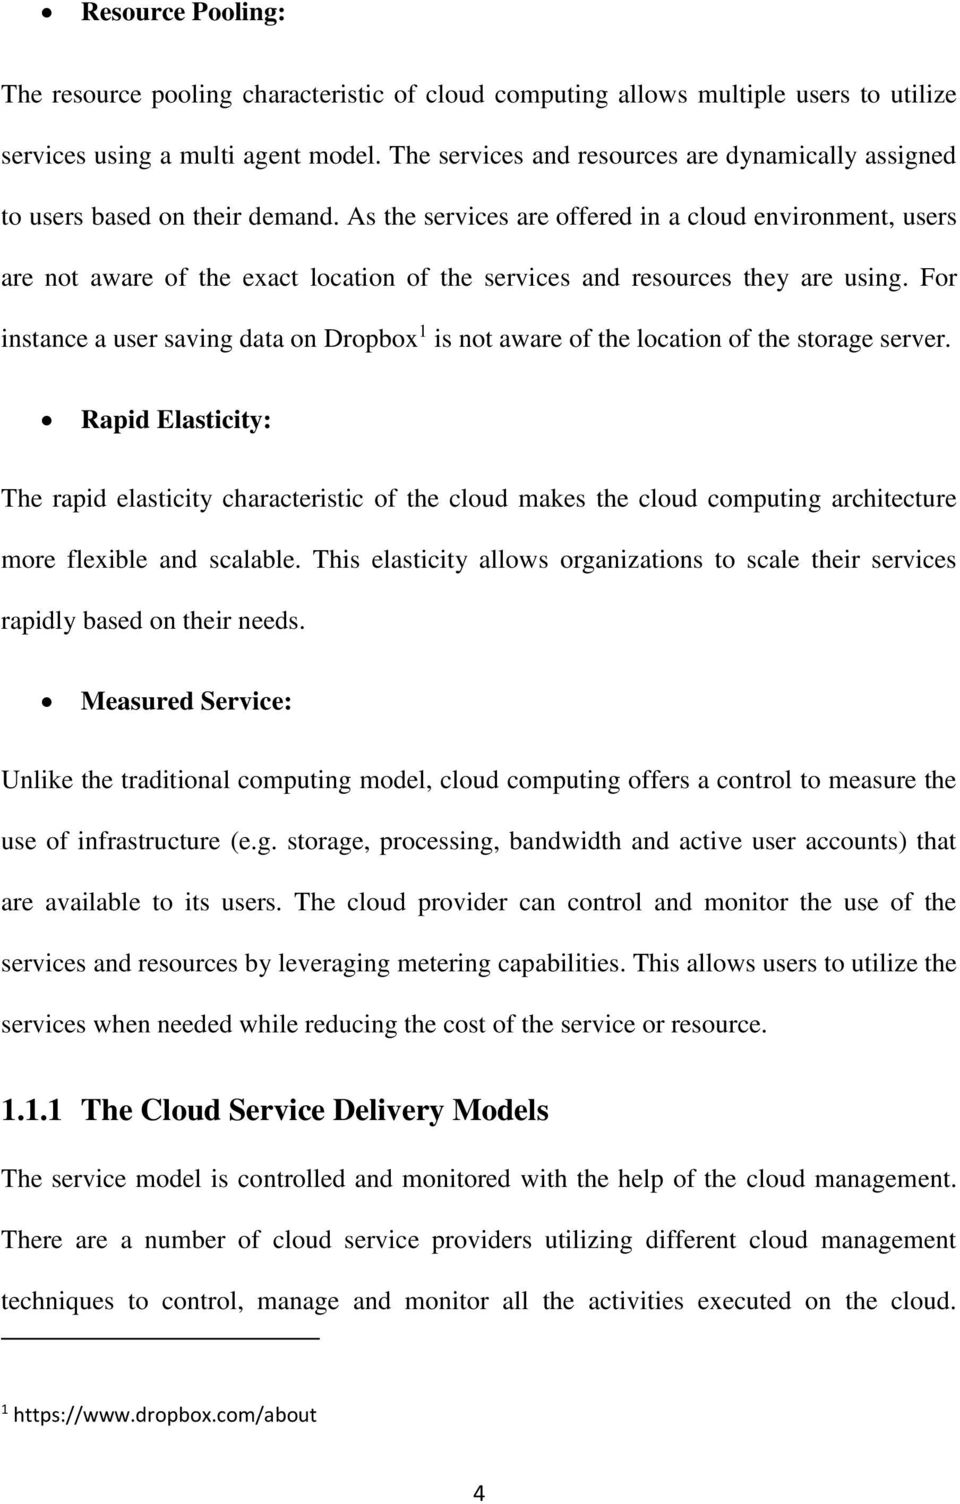 As the services are offered in a cloud environment, users are not aware of the exact location of the services and resources they are using.